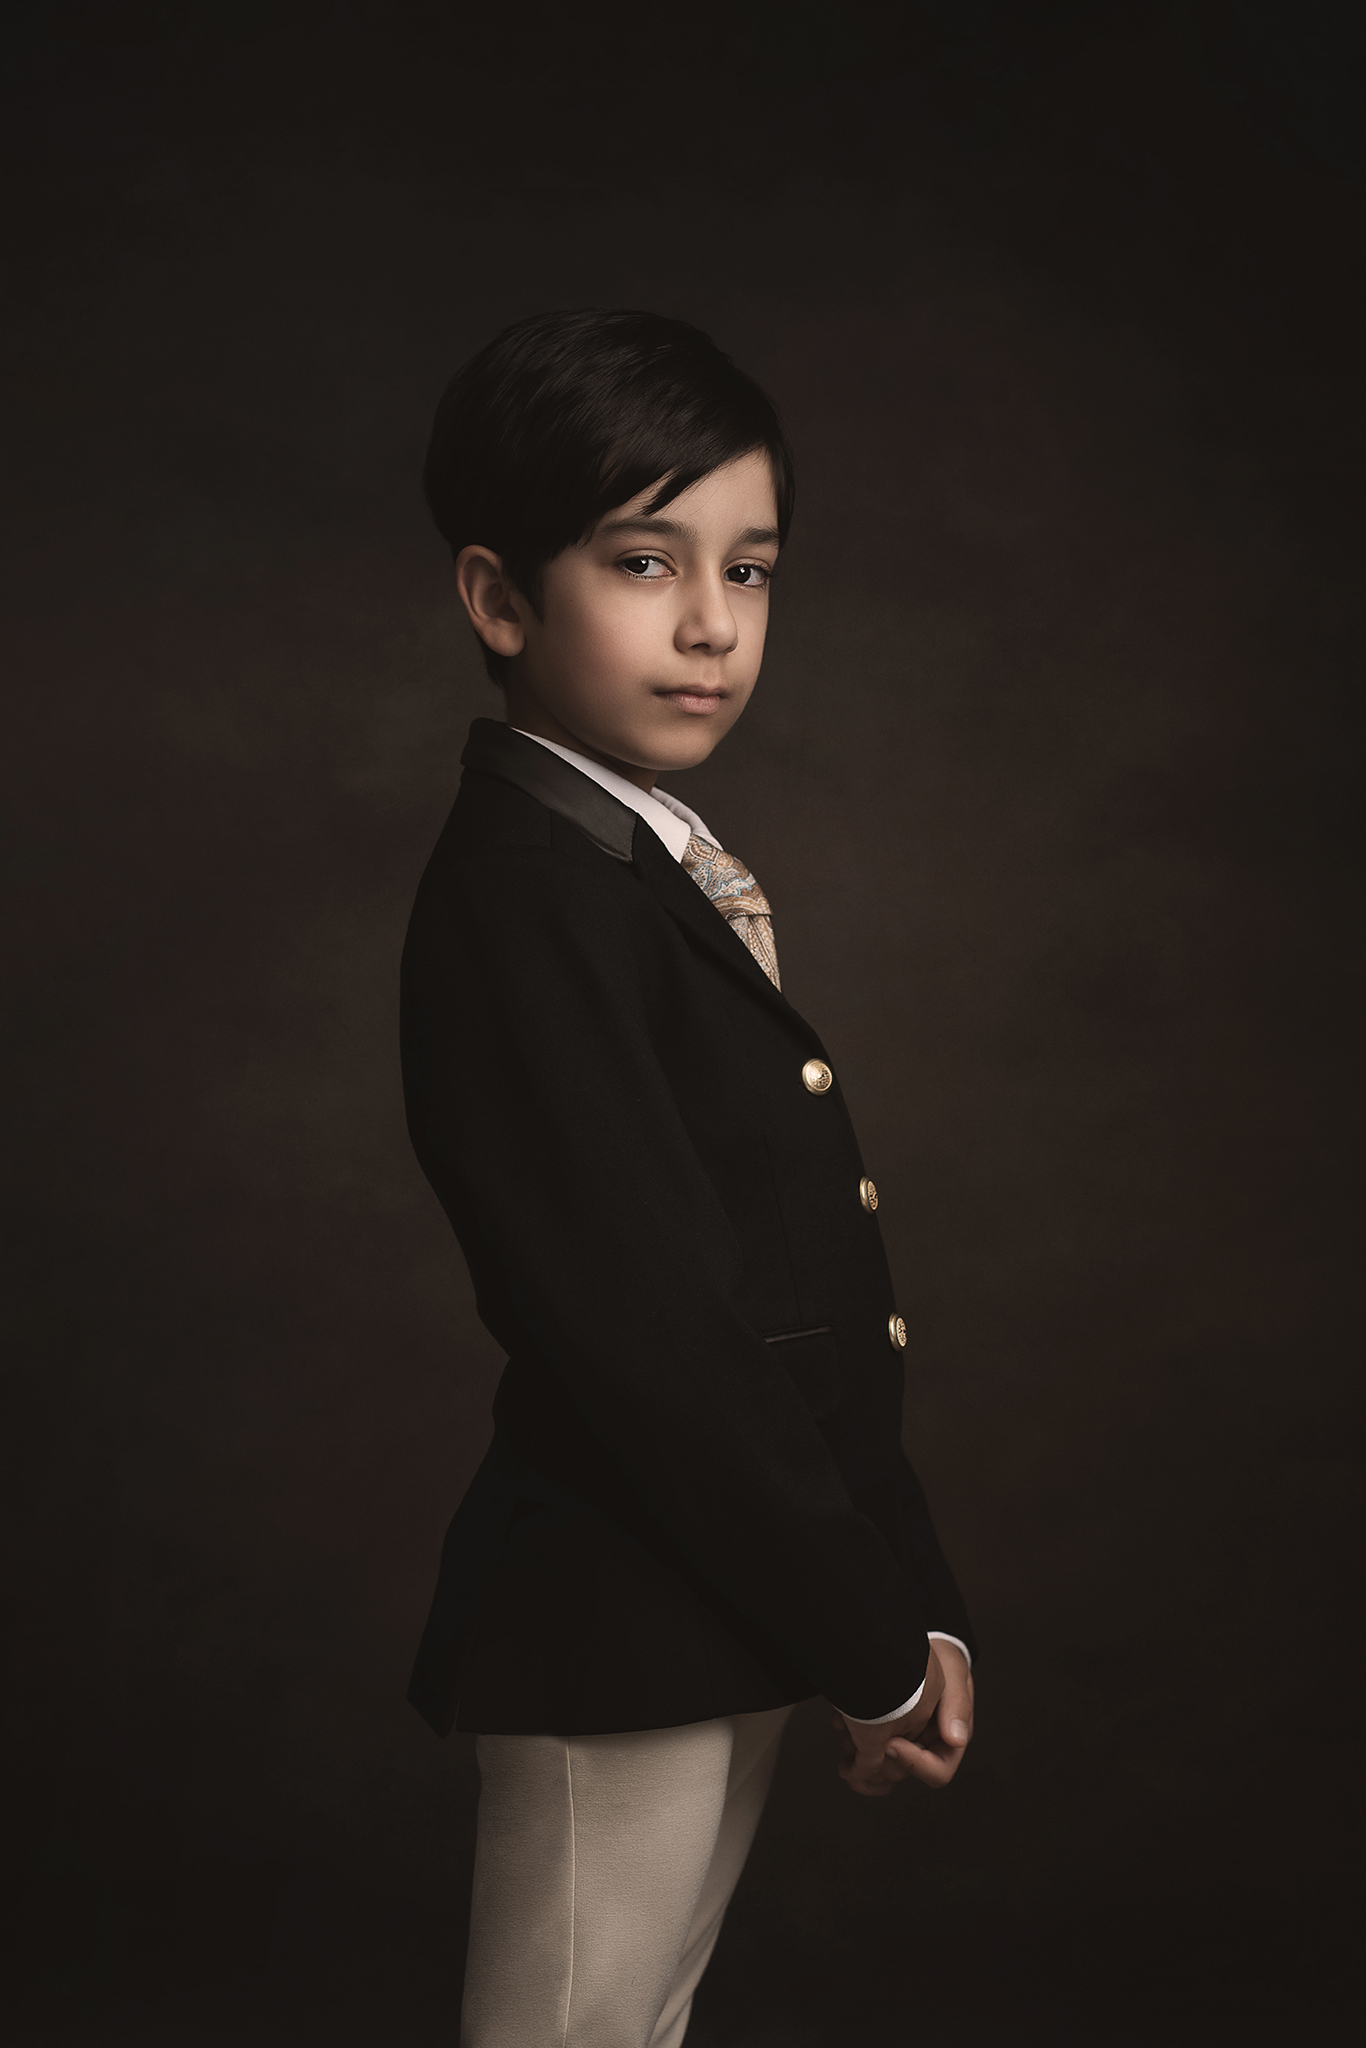 boy child model portfolio styled shoot in studio by Portrait photographer Preston